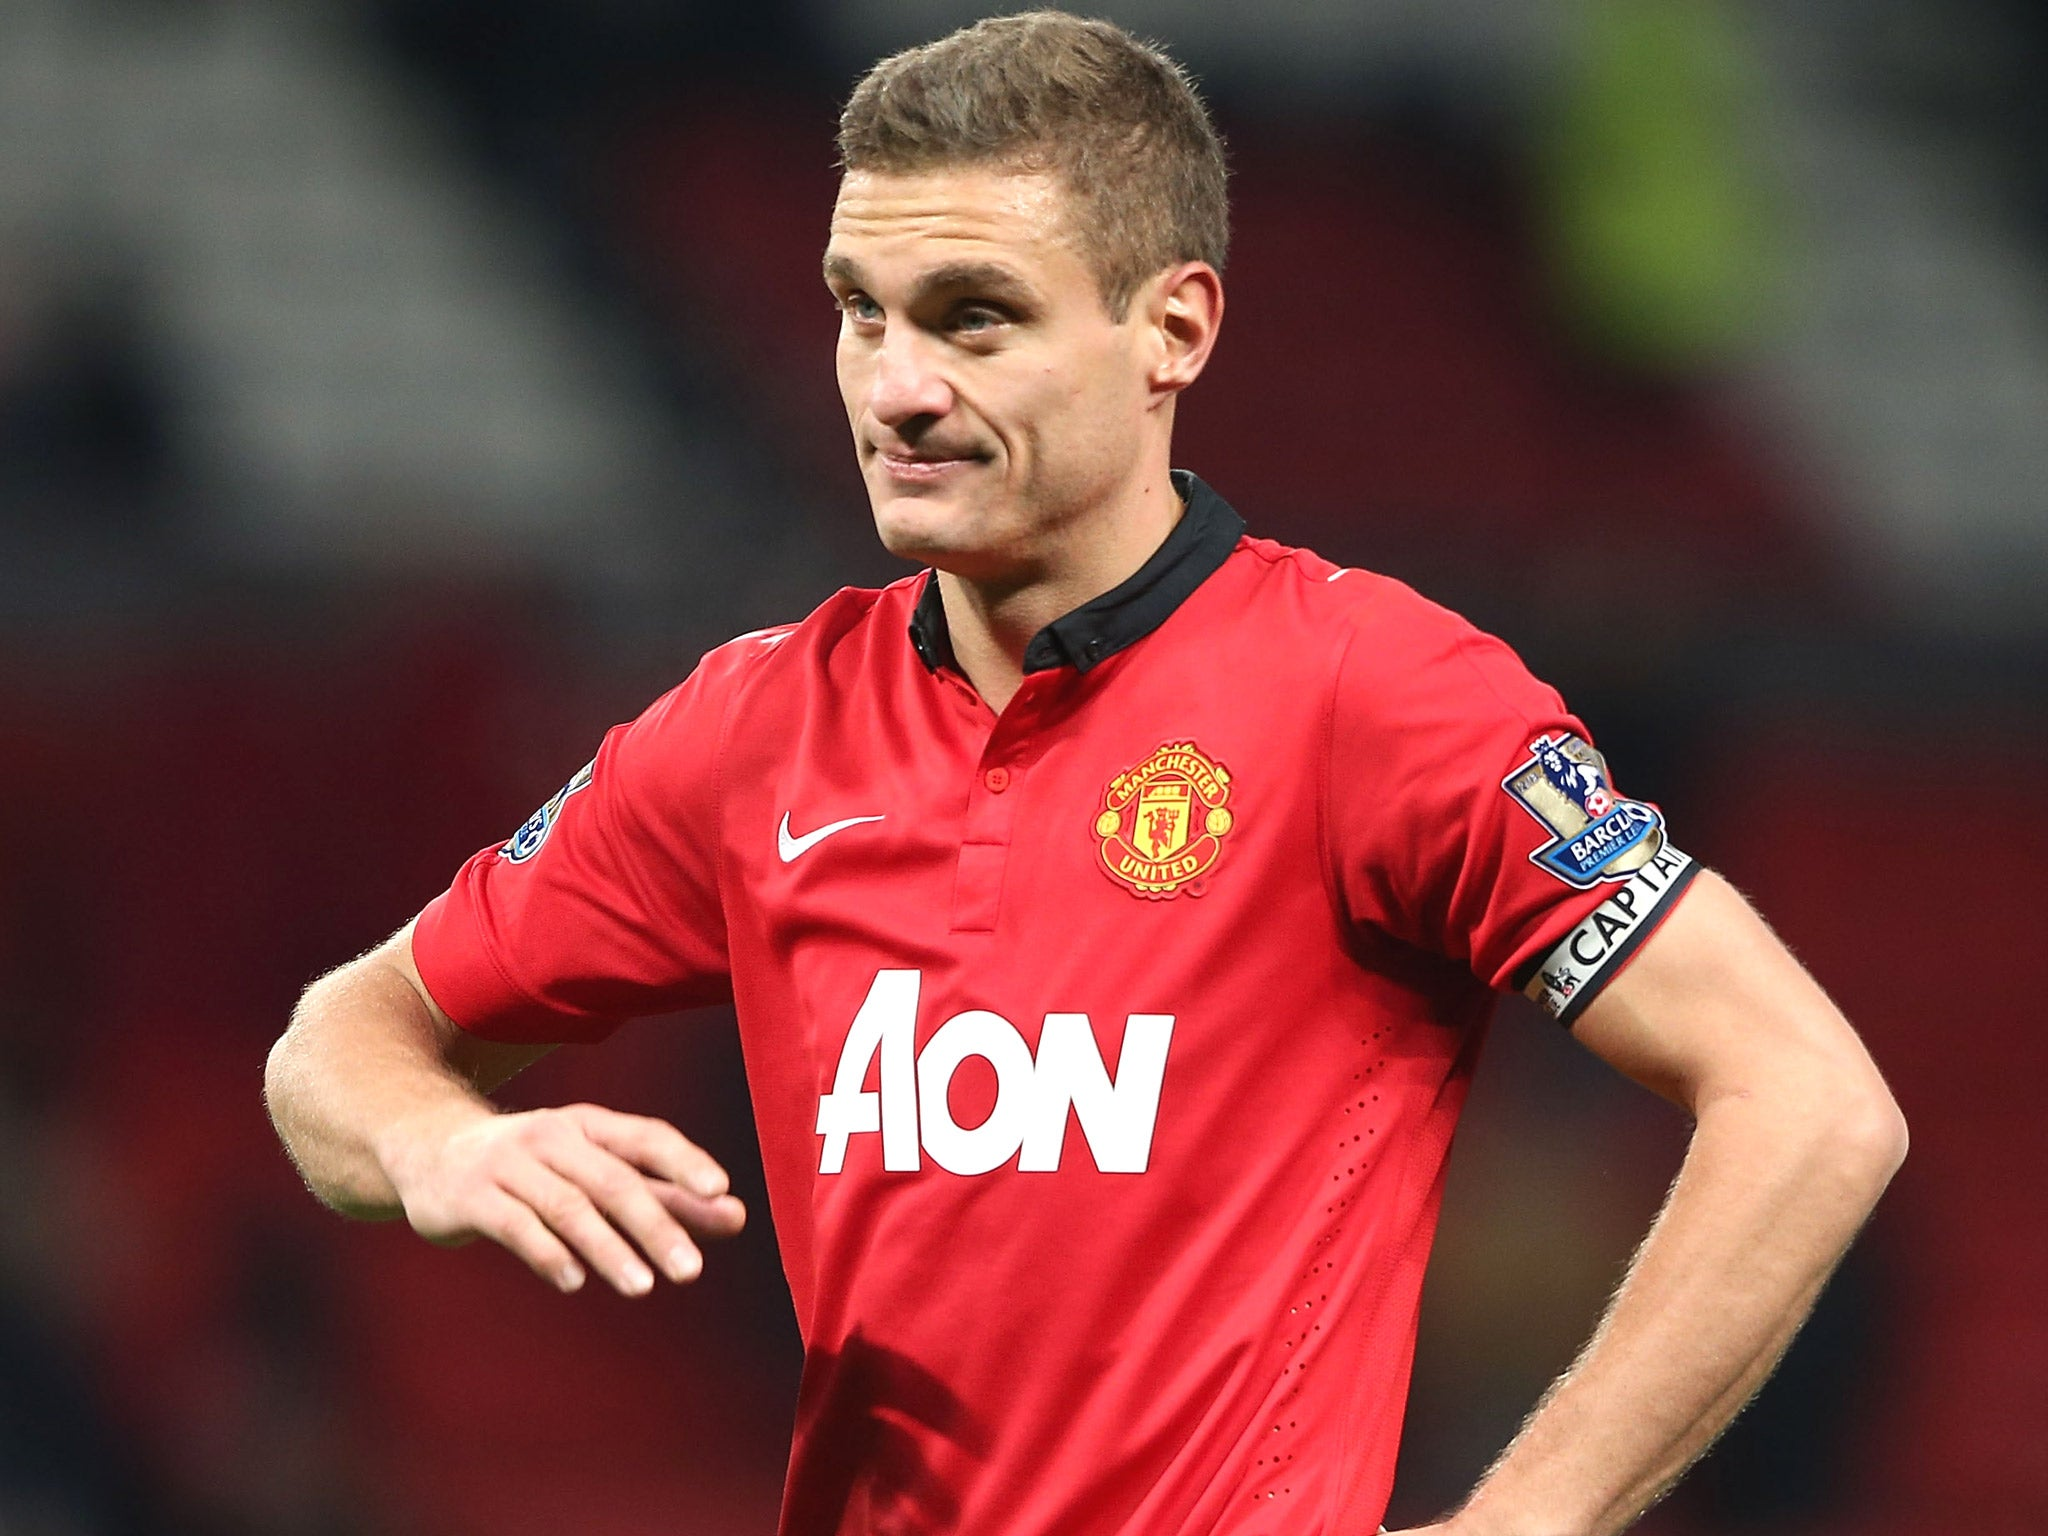 Stoke City v Manchester United Nemanja Vidic must fight for place